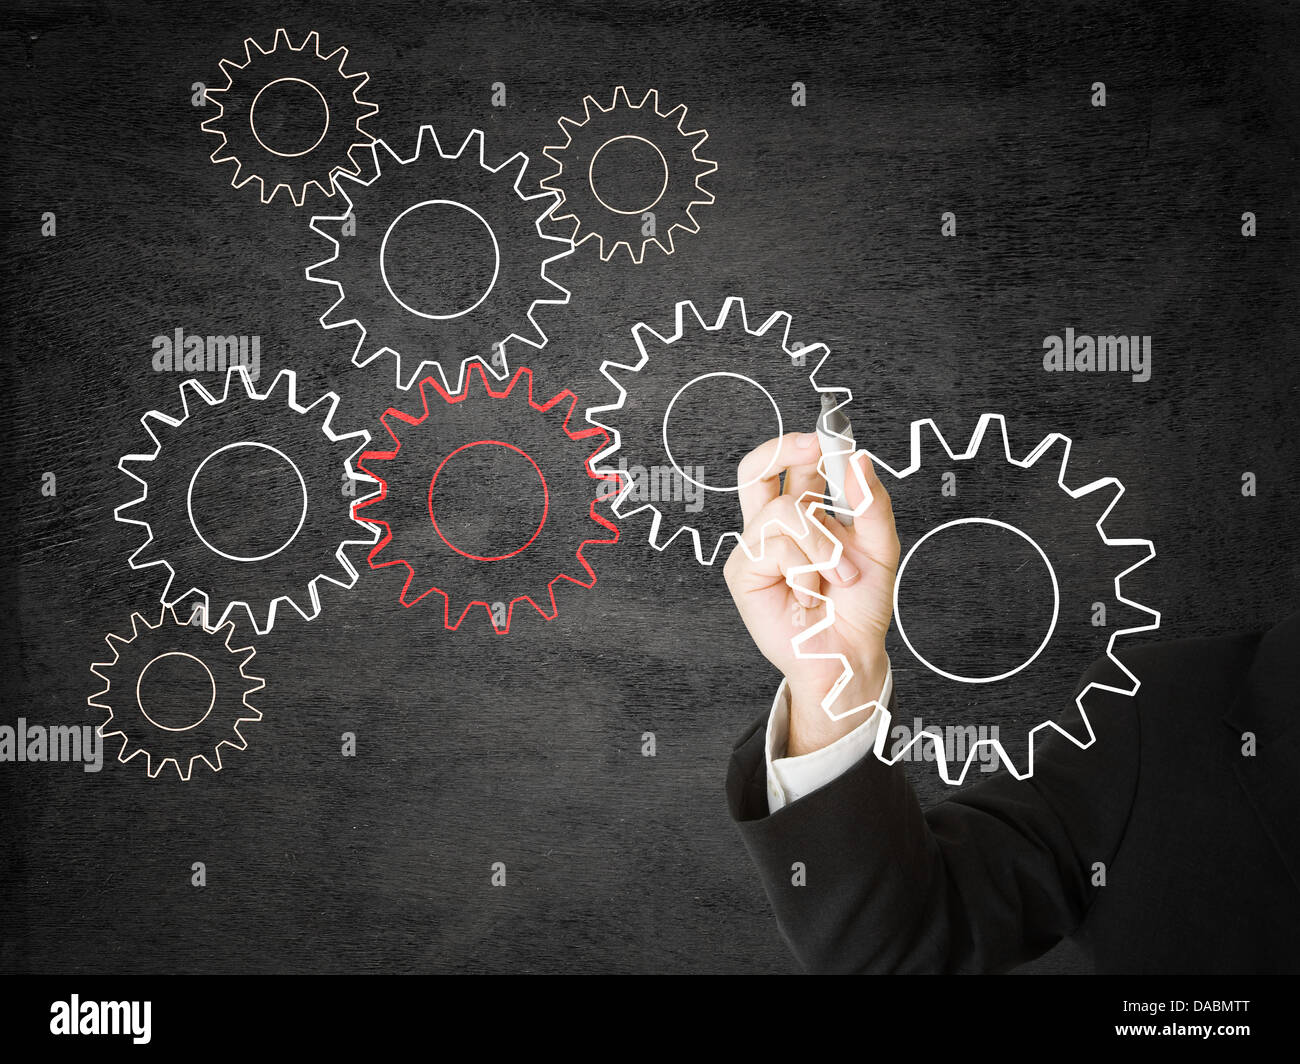 Businessman drawing cogwheels - networking or cooperation concept - Stock Image